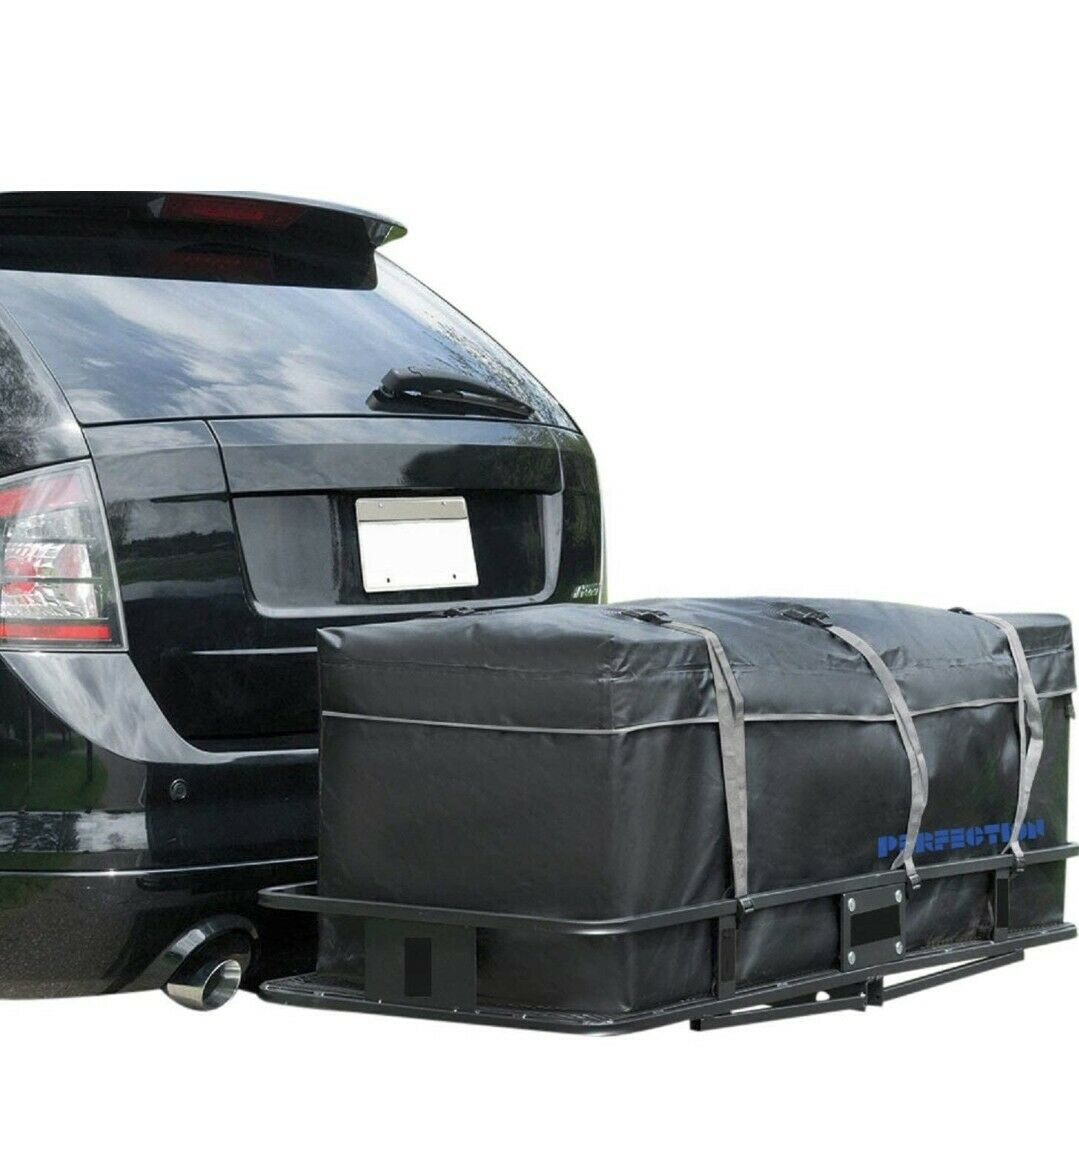 PVC Pipe Frame for Hitch Cargo Bag 59 x 24 x 24 MARKSIGN Waterproof Hitch Carrier Cargo Bag